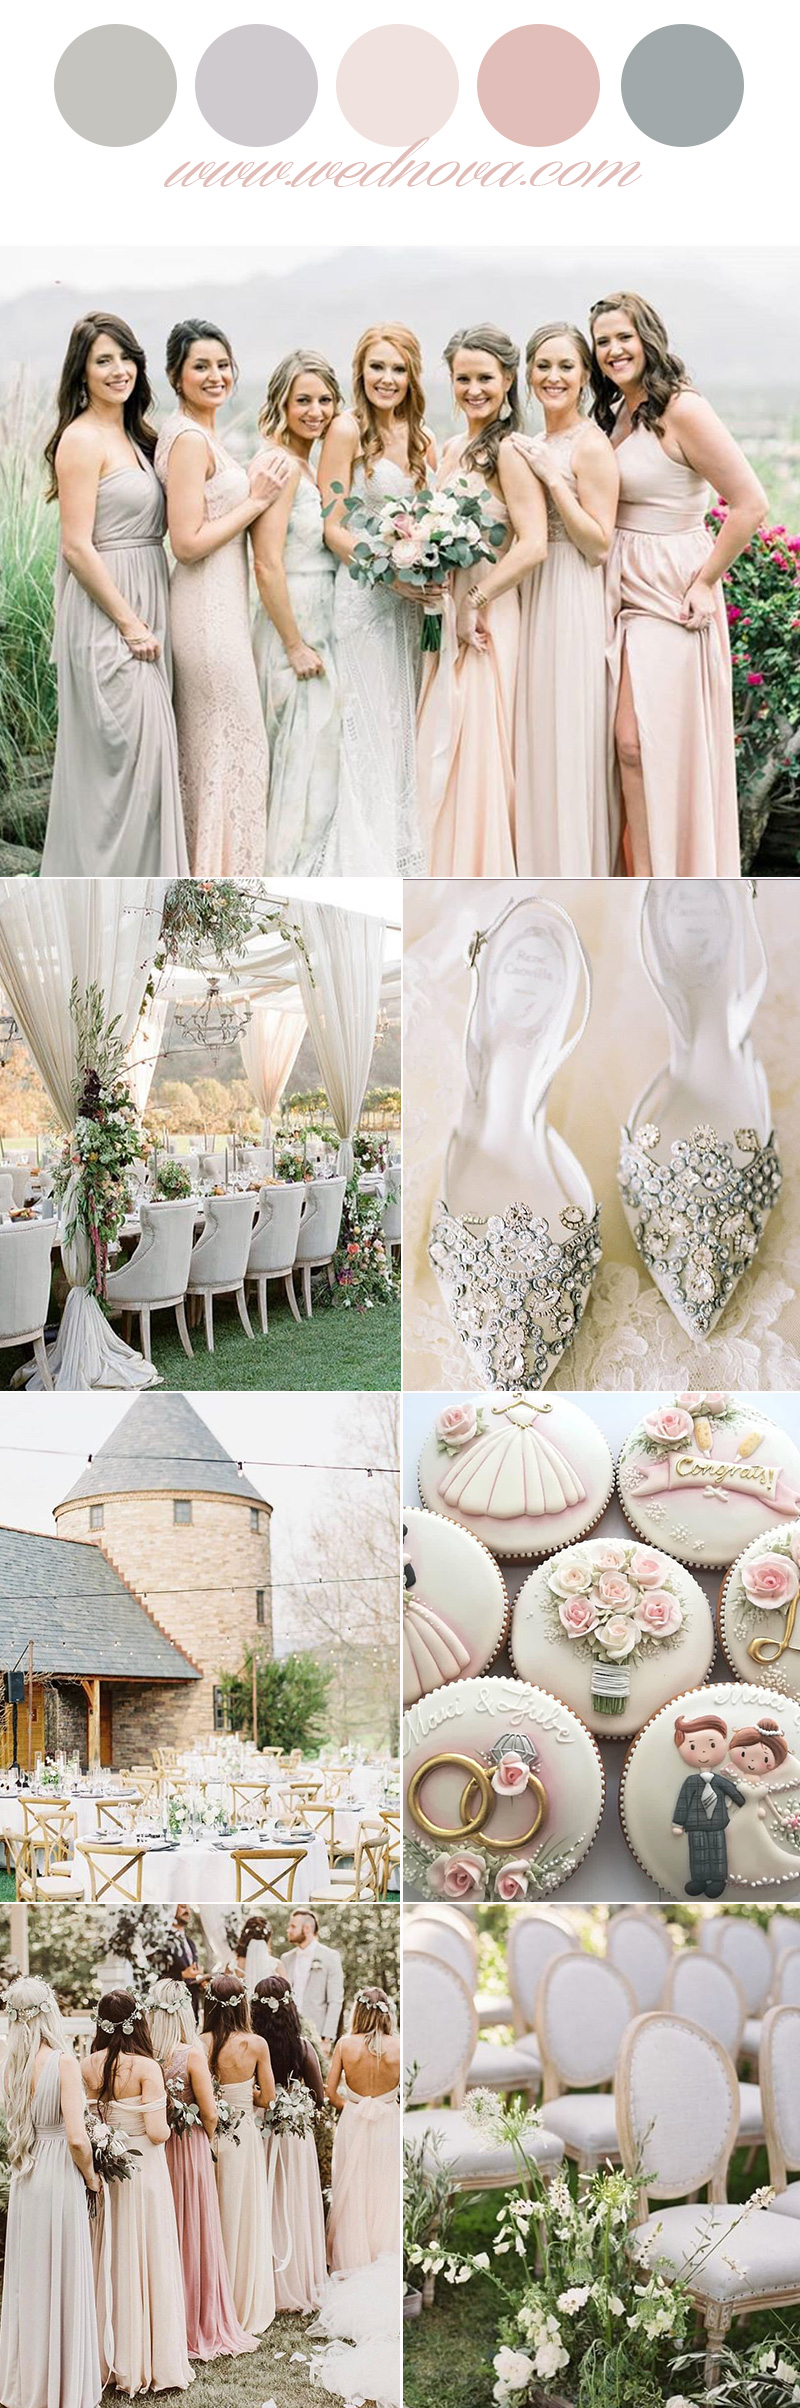 12 Wedding Color Palettes That Are Perfect for Spring ...